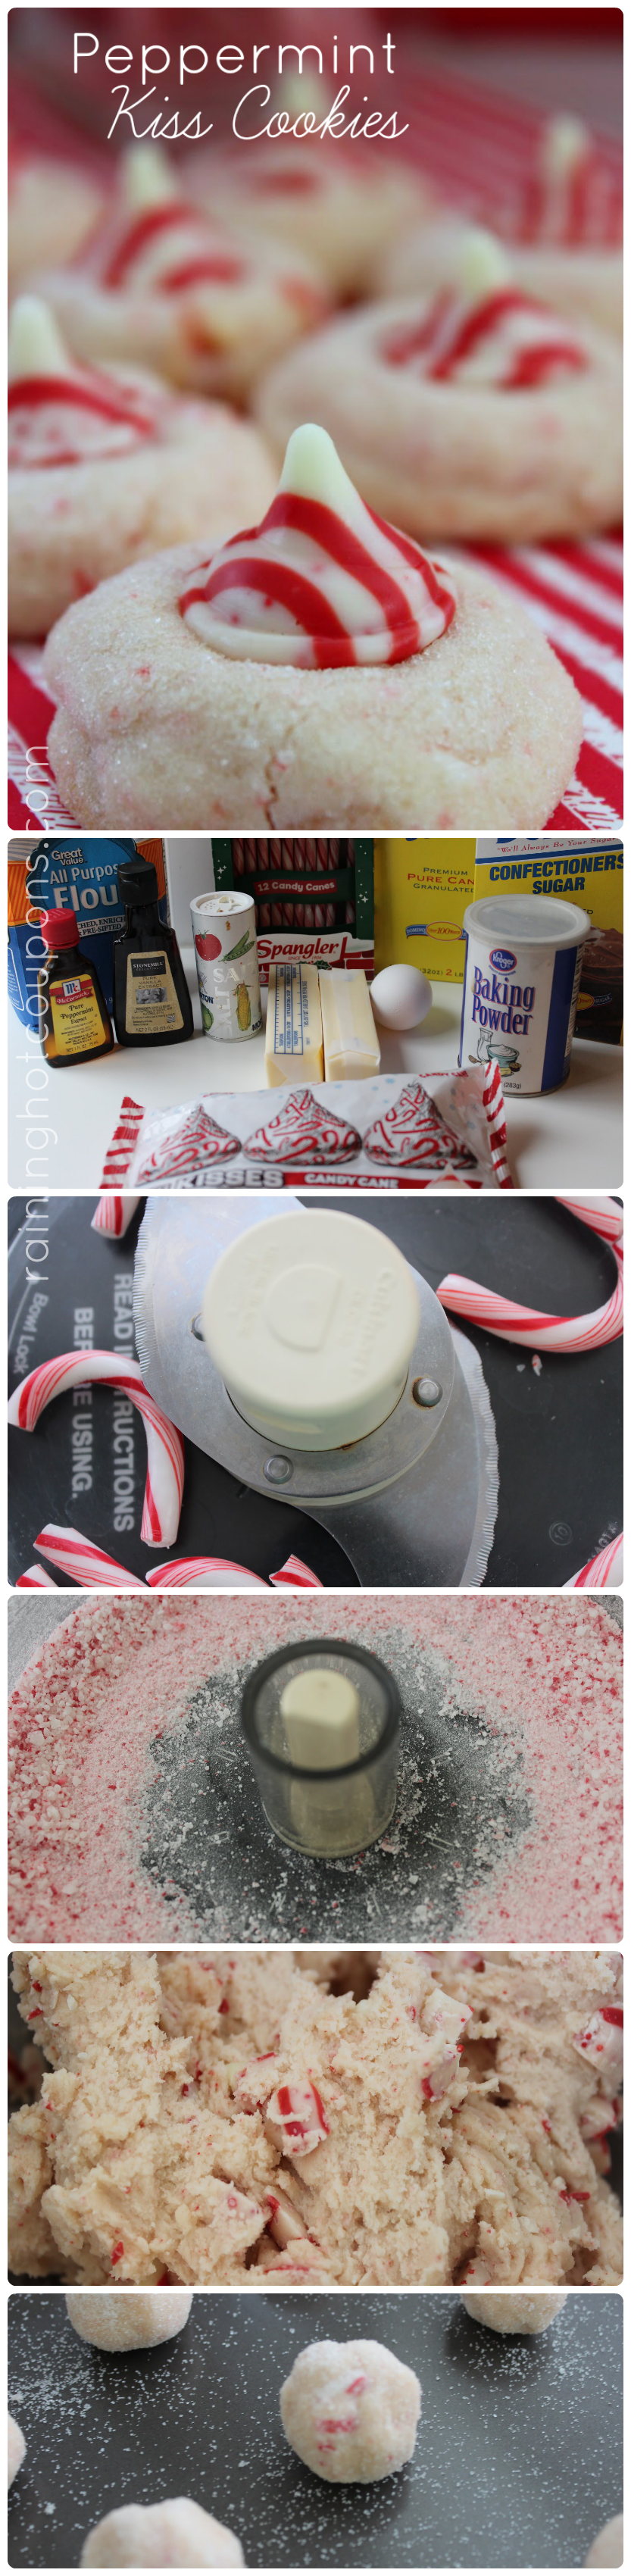 peppermint cookies collage